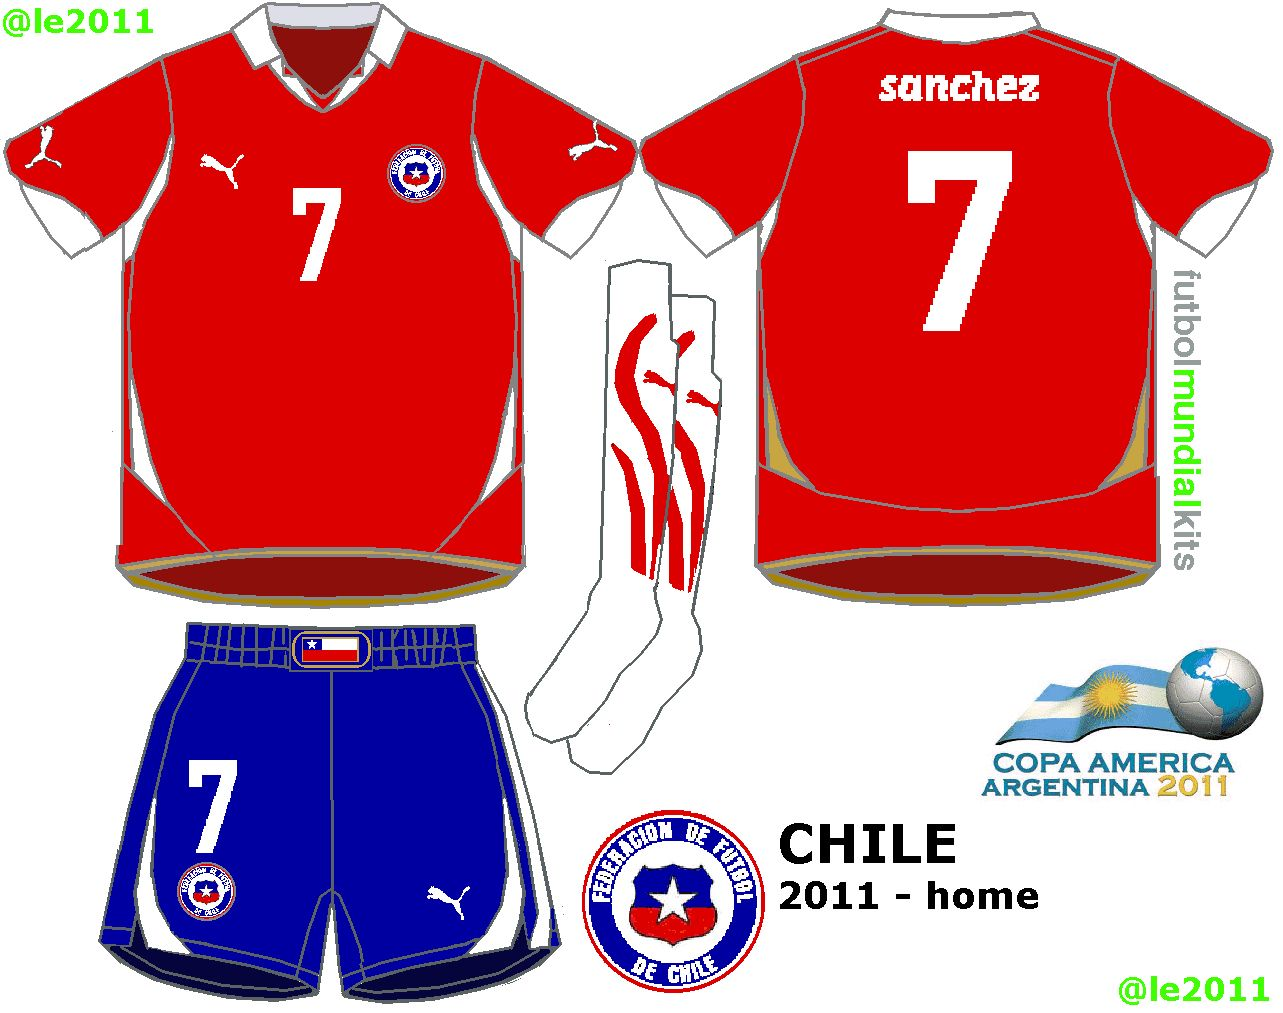 Chile home kit for 2011.